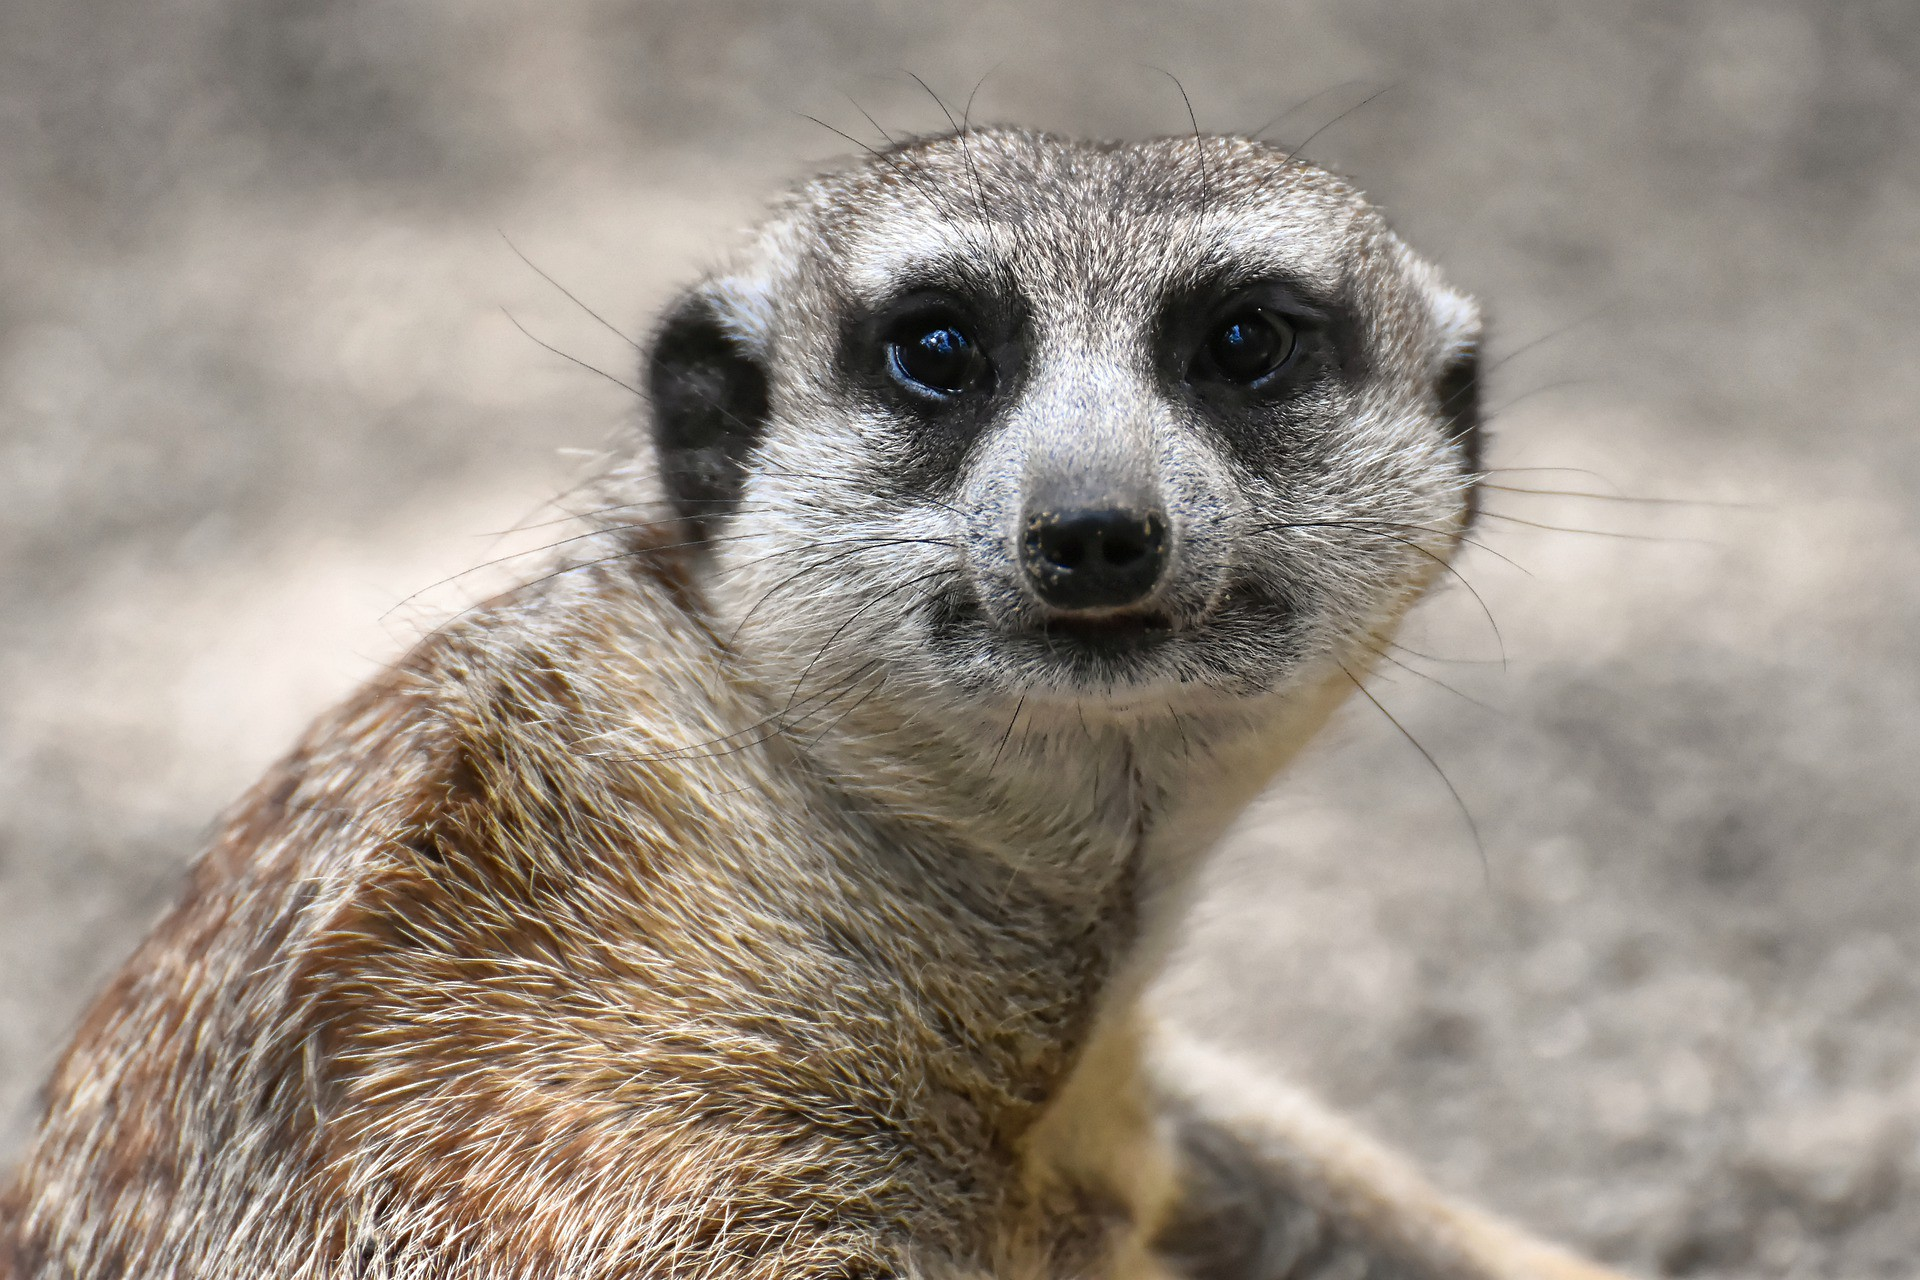 """Meerkat with a """"Really, Medium?"""" quizzical expression on its face."""